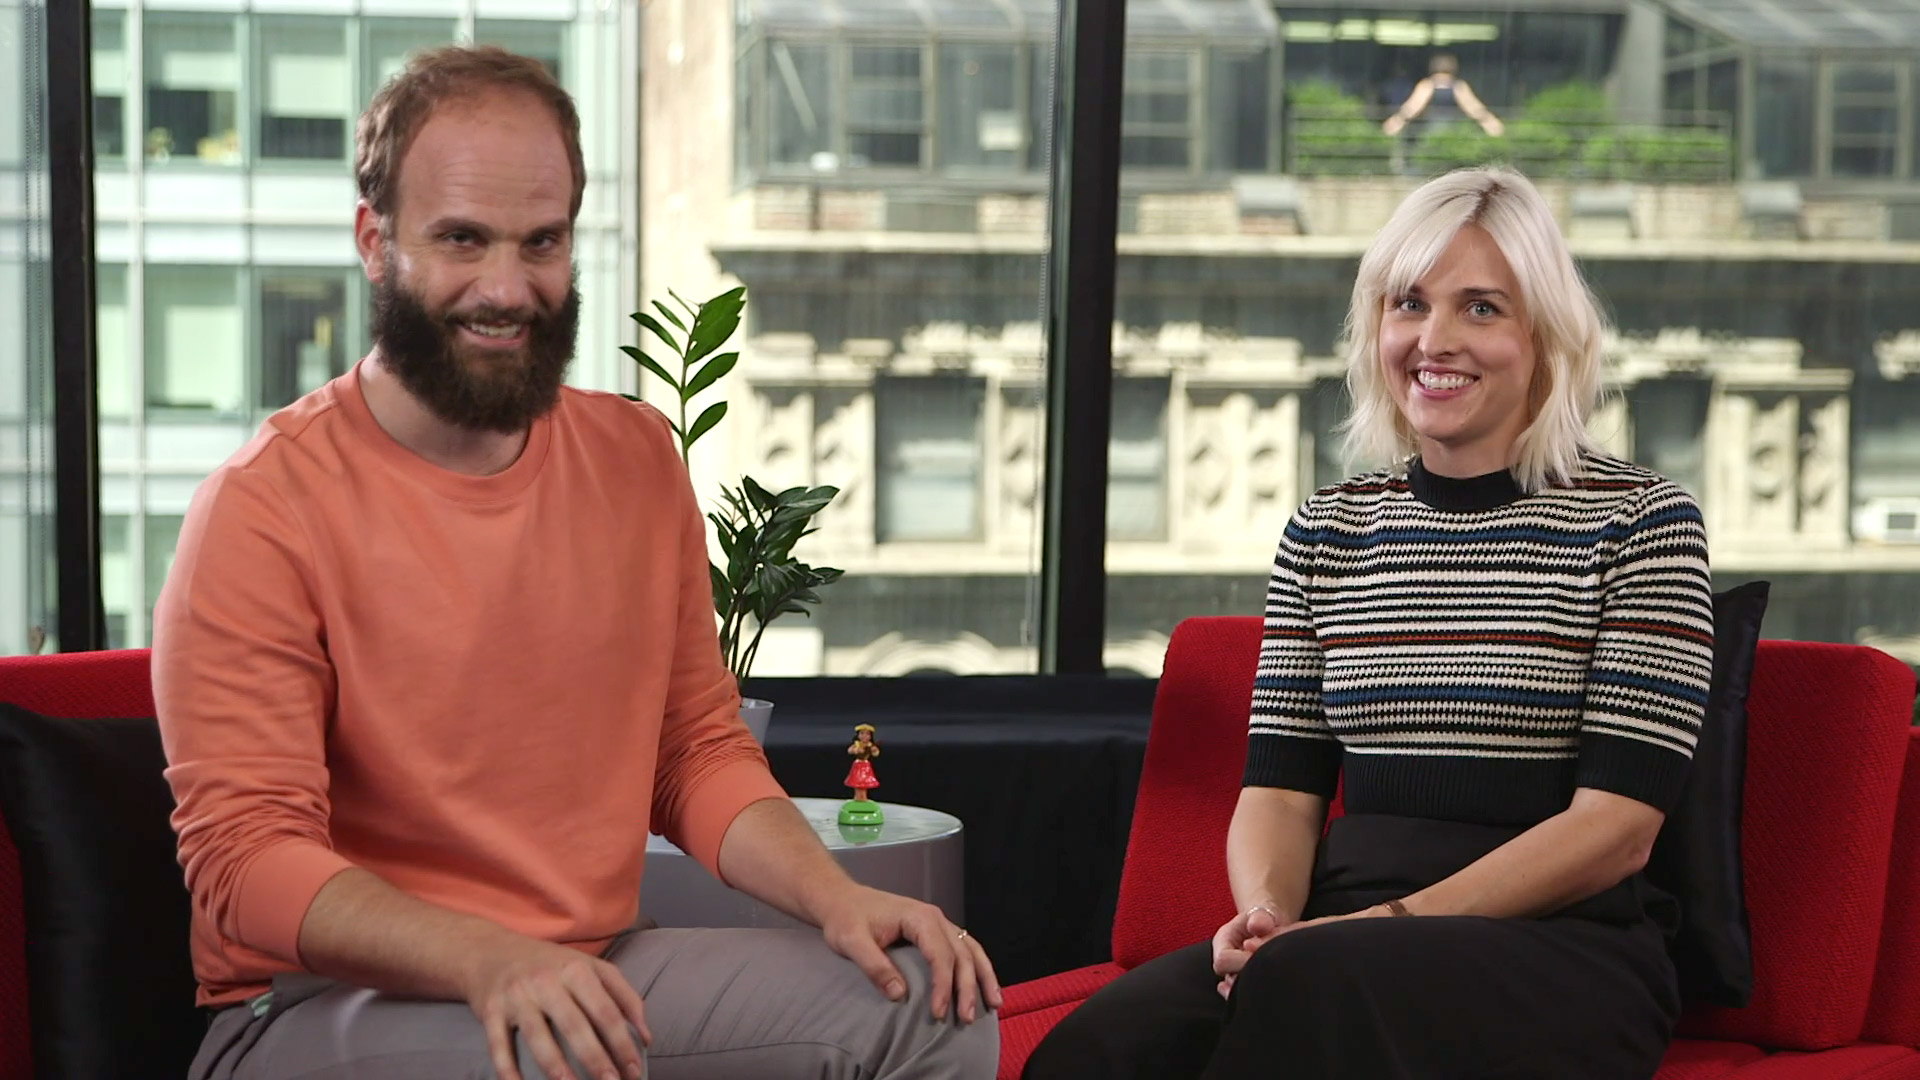 High Maintenance - Official Website for the HBO Series